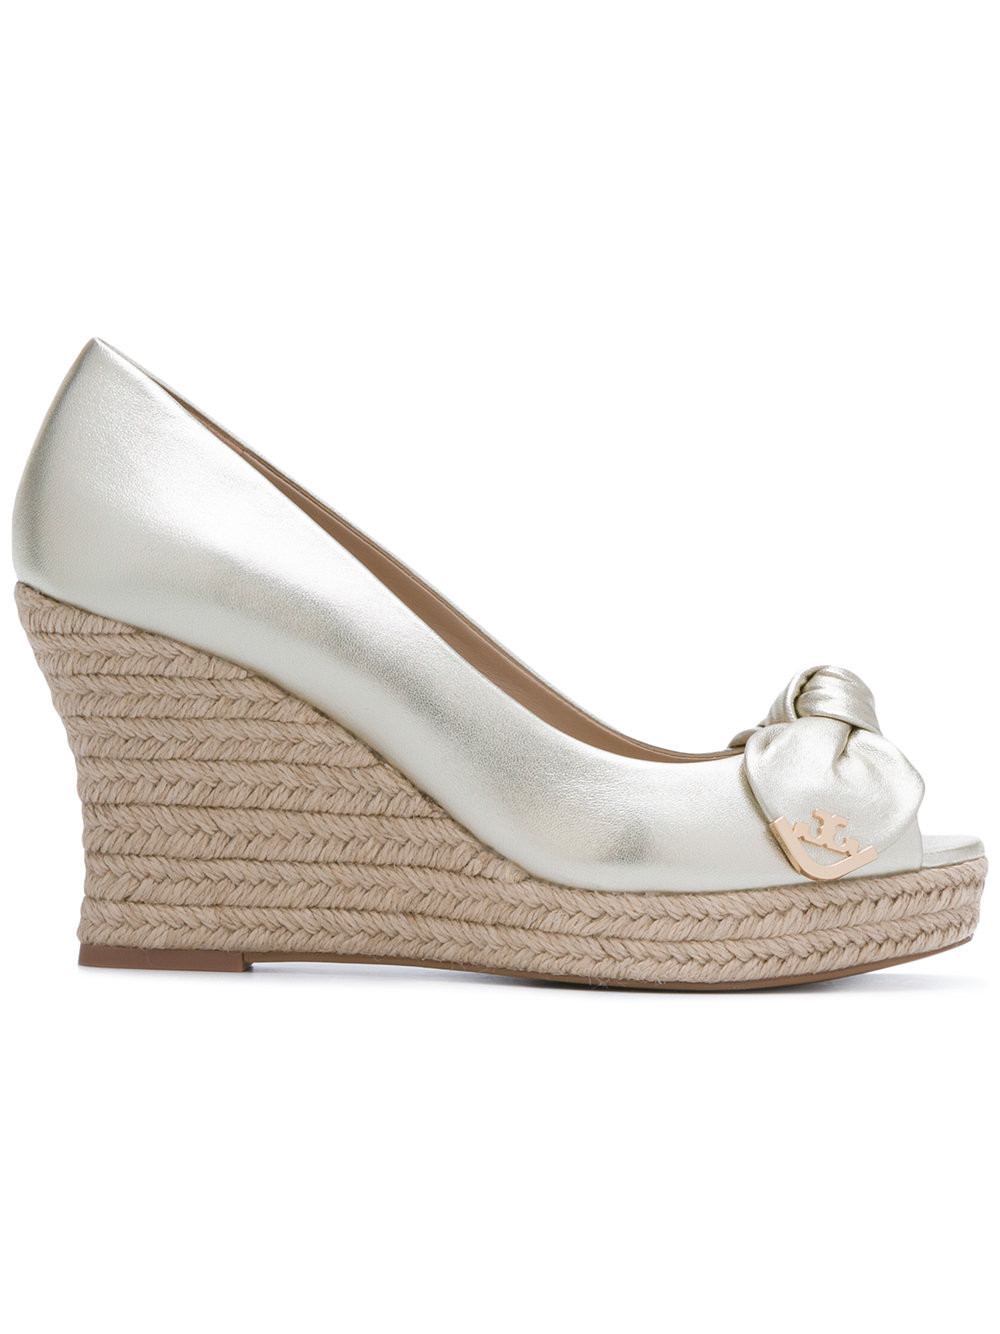 Tory Burch Dory metallic peep-toe espadrille wedges - Nude & Neutrals